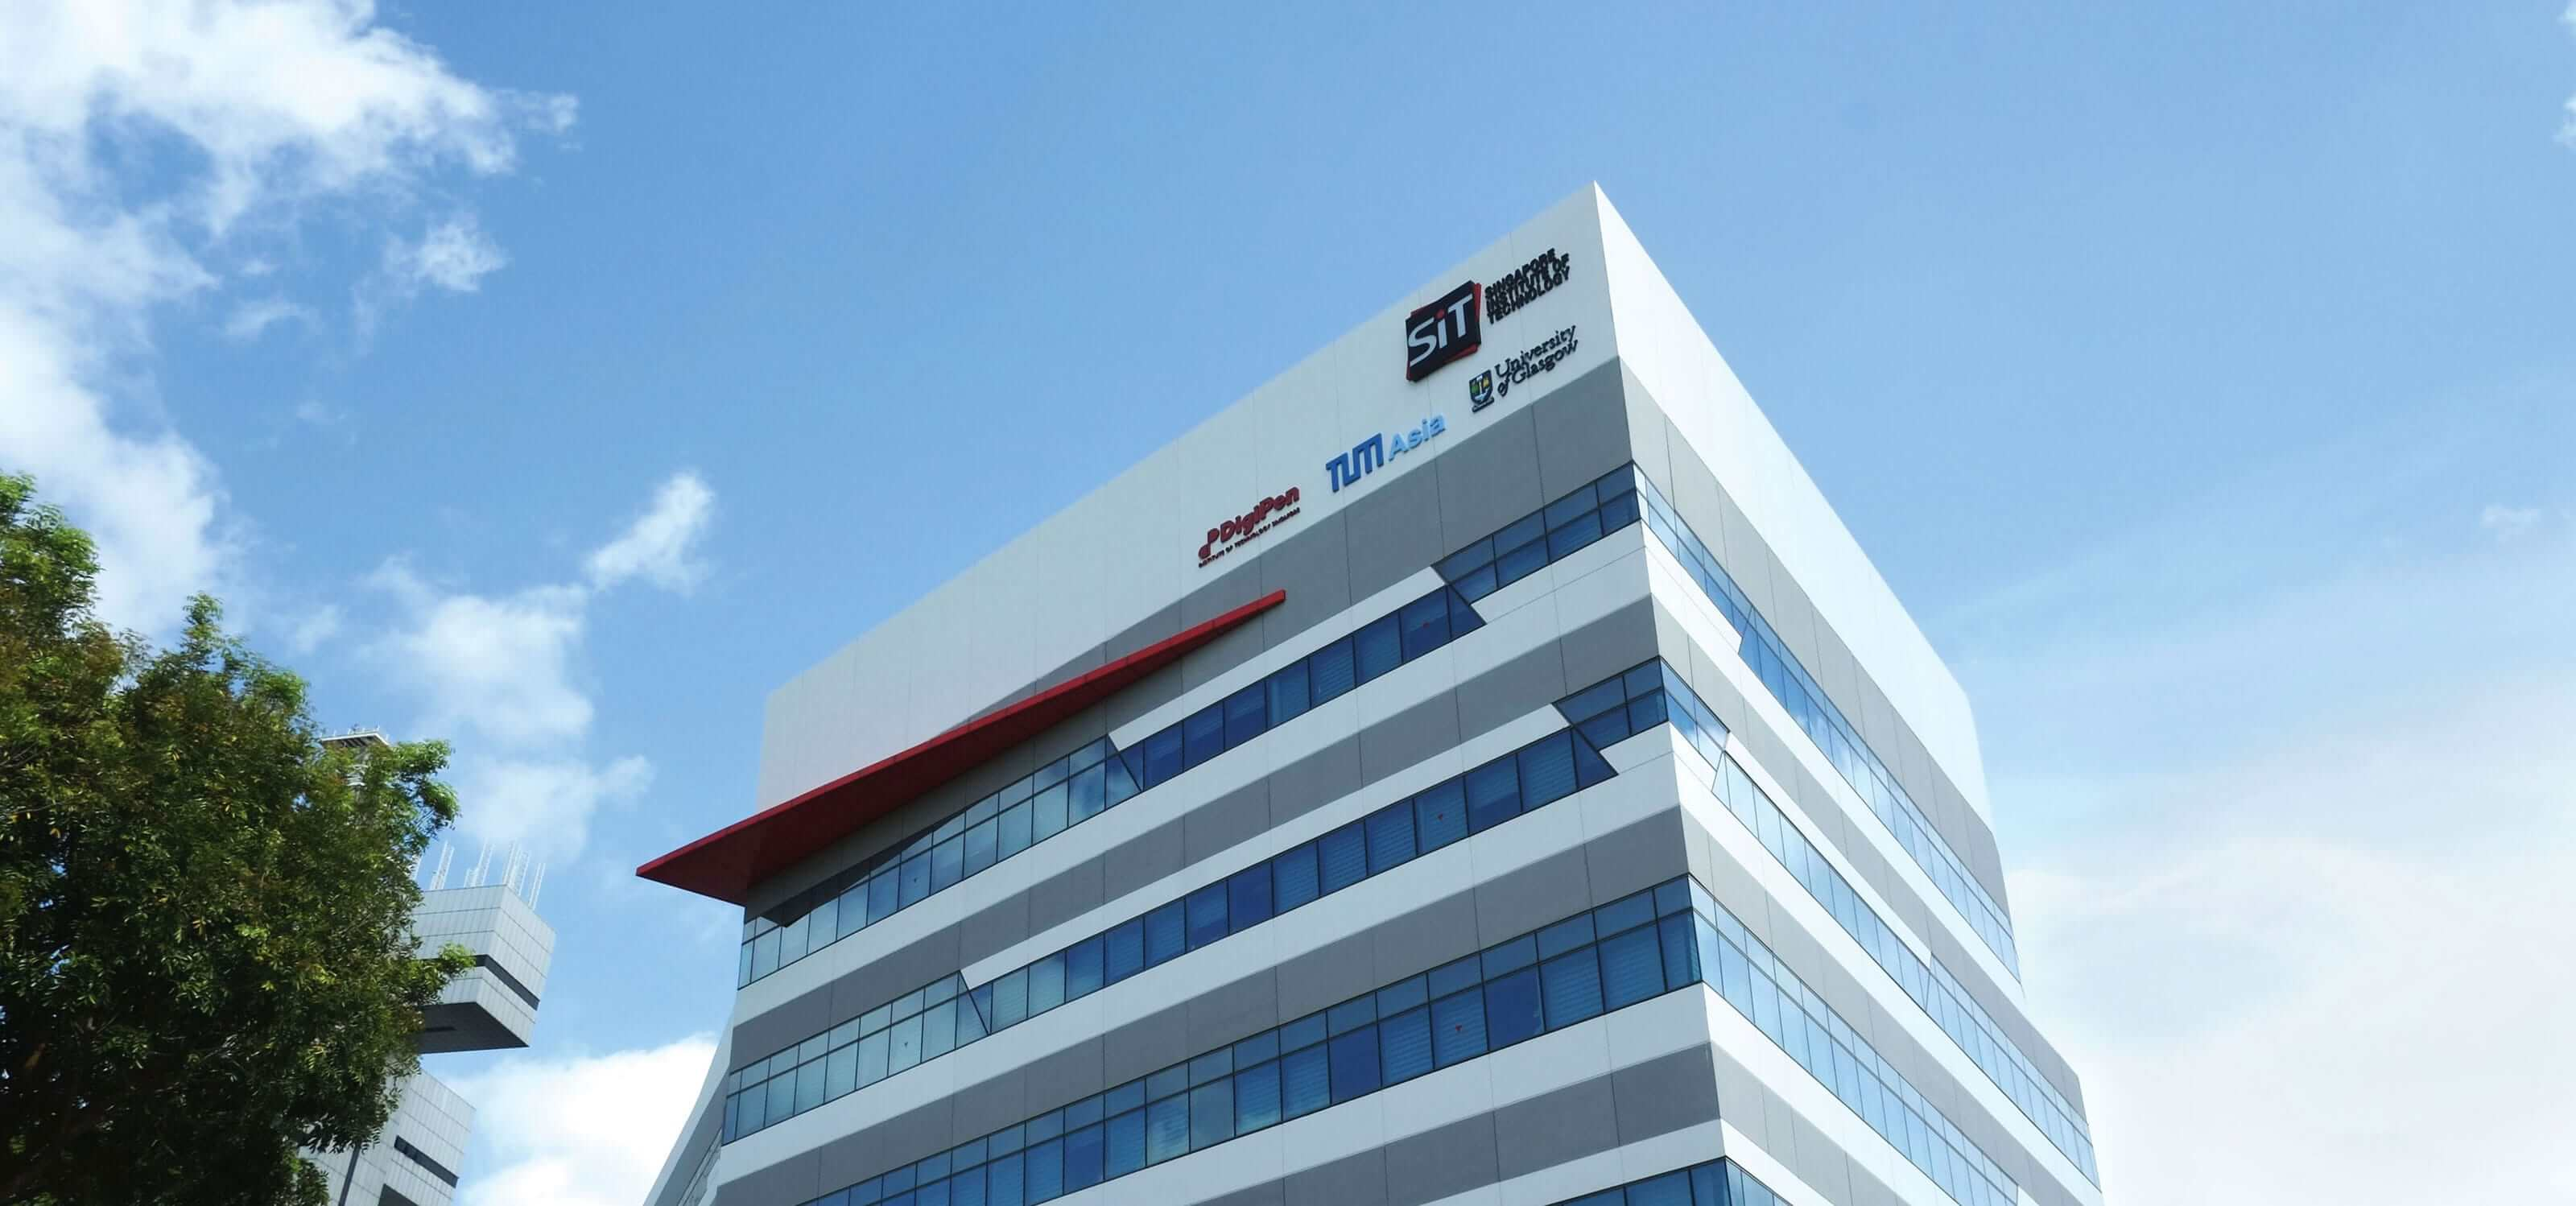 Picture of the exterior of the DigiPen (Singapore) campus building